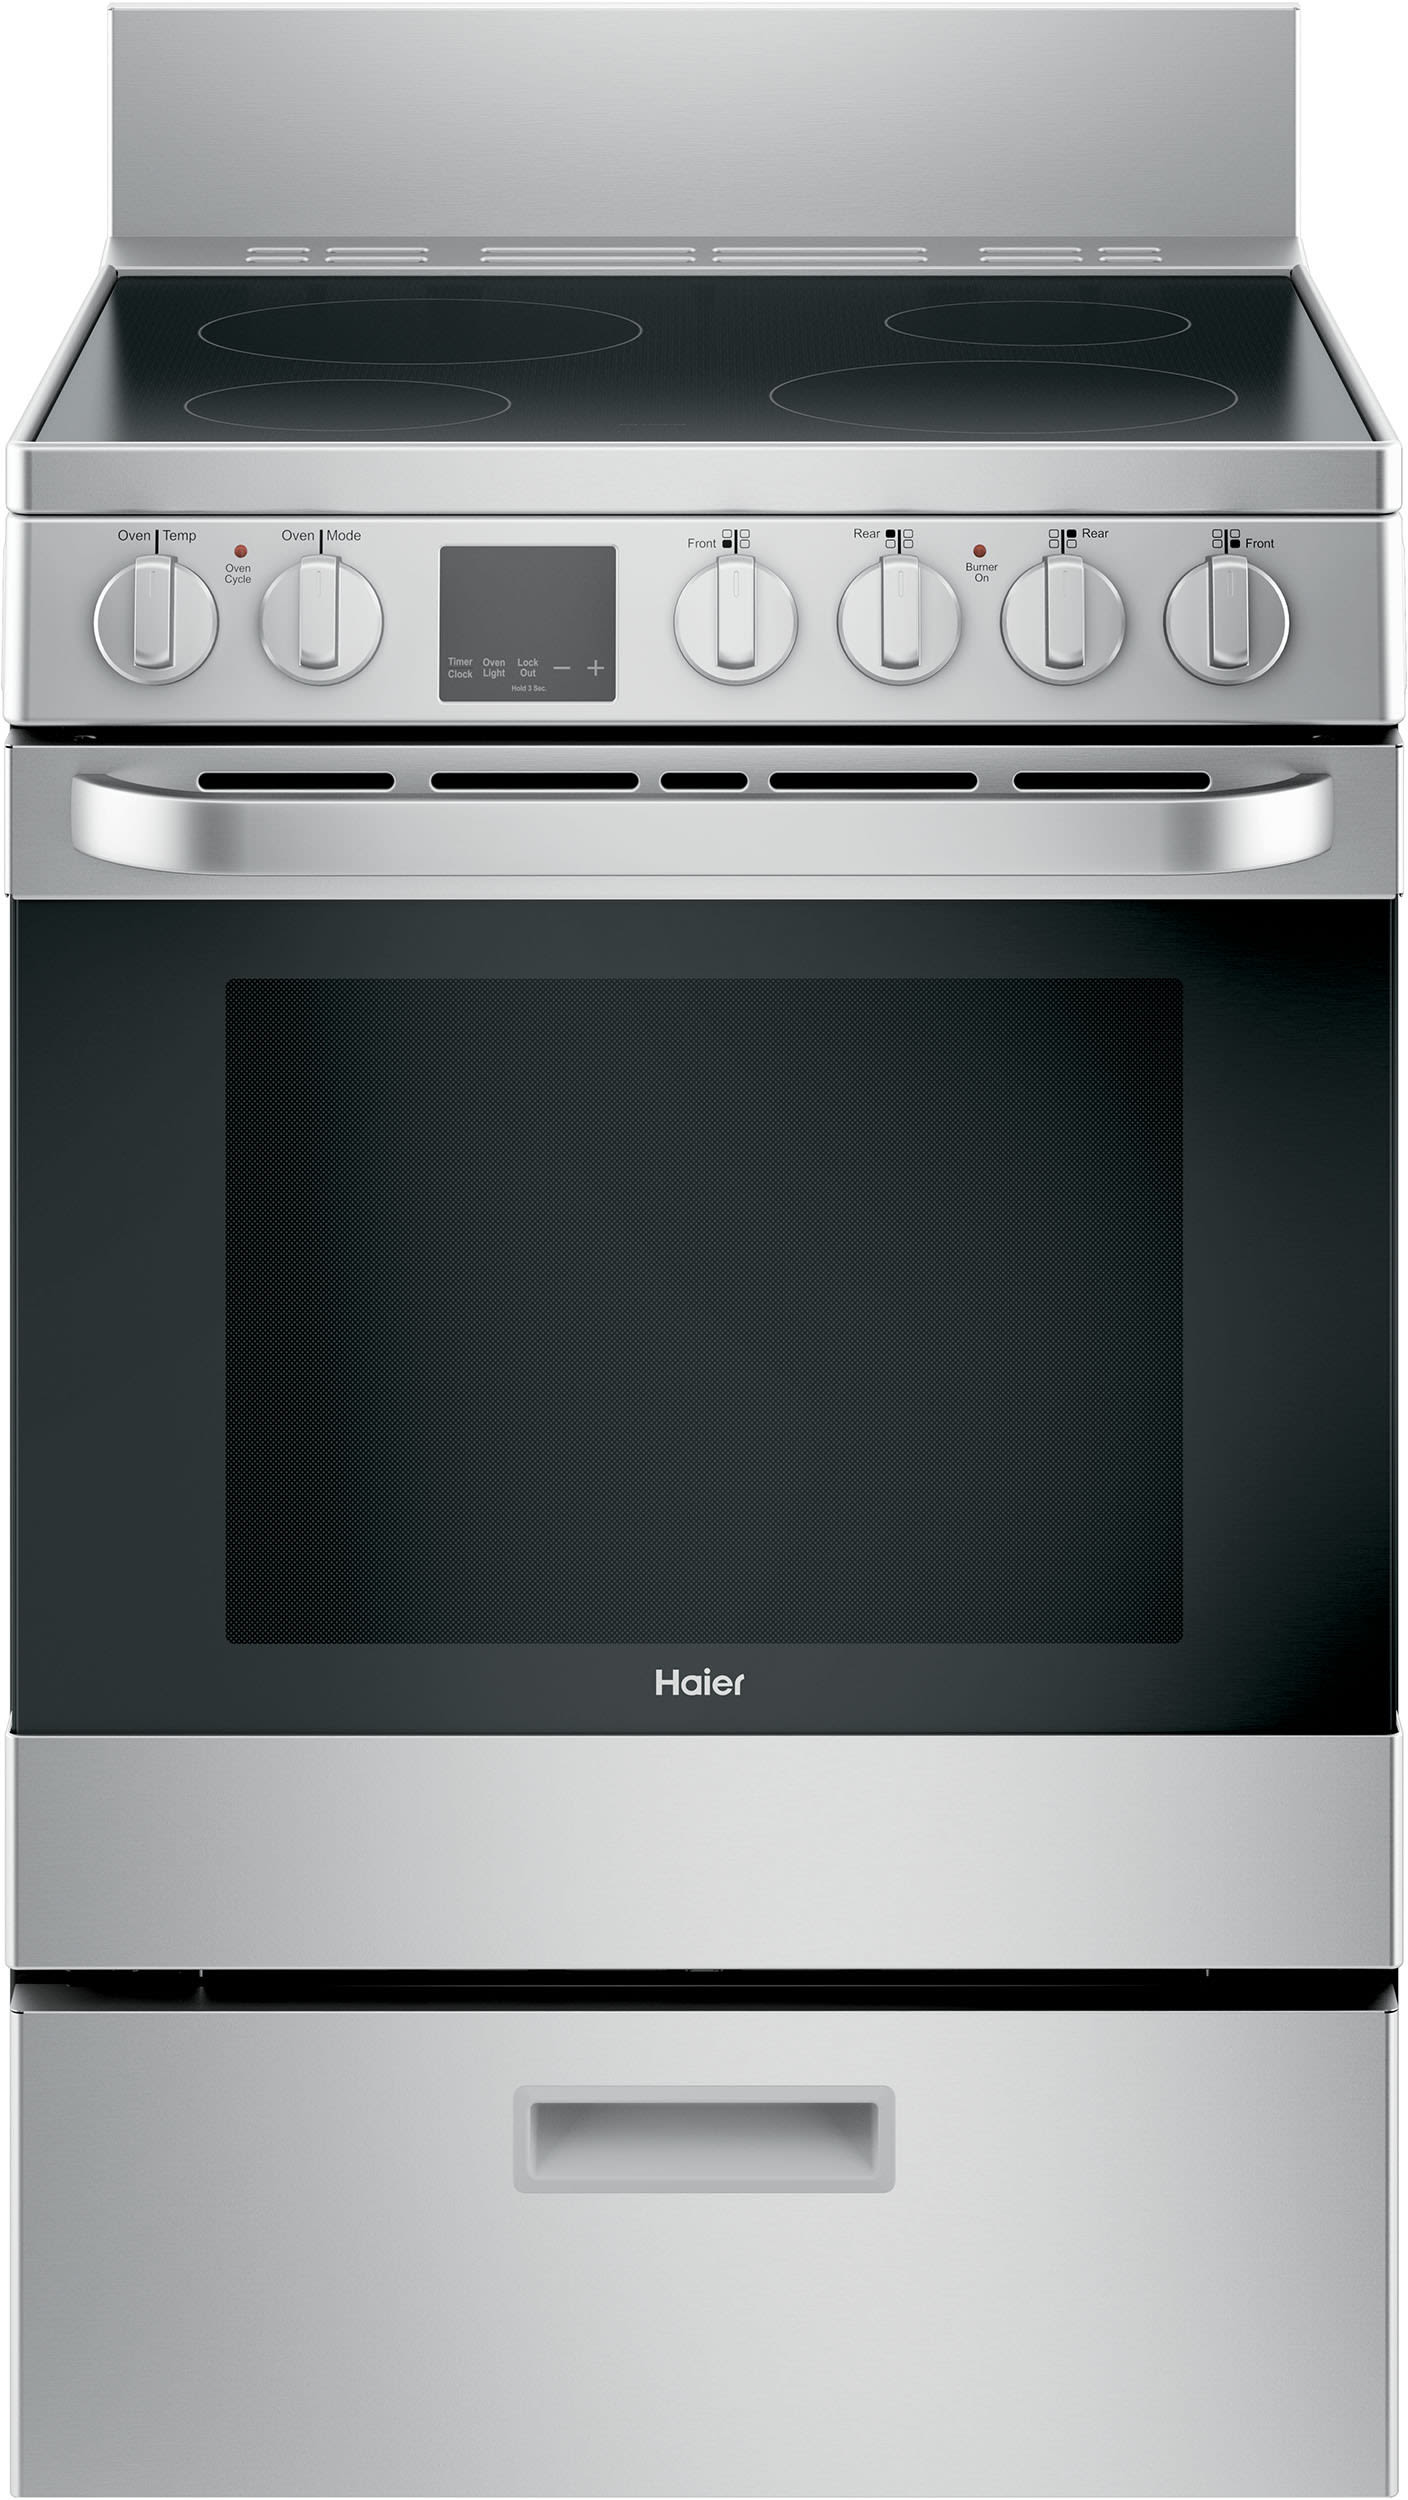 haier qas740rmss 24 inch freestanding electric range with convection smoothtop cooktop storage. Black Bedroom Furniture Sets. Home Design Ideas